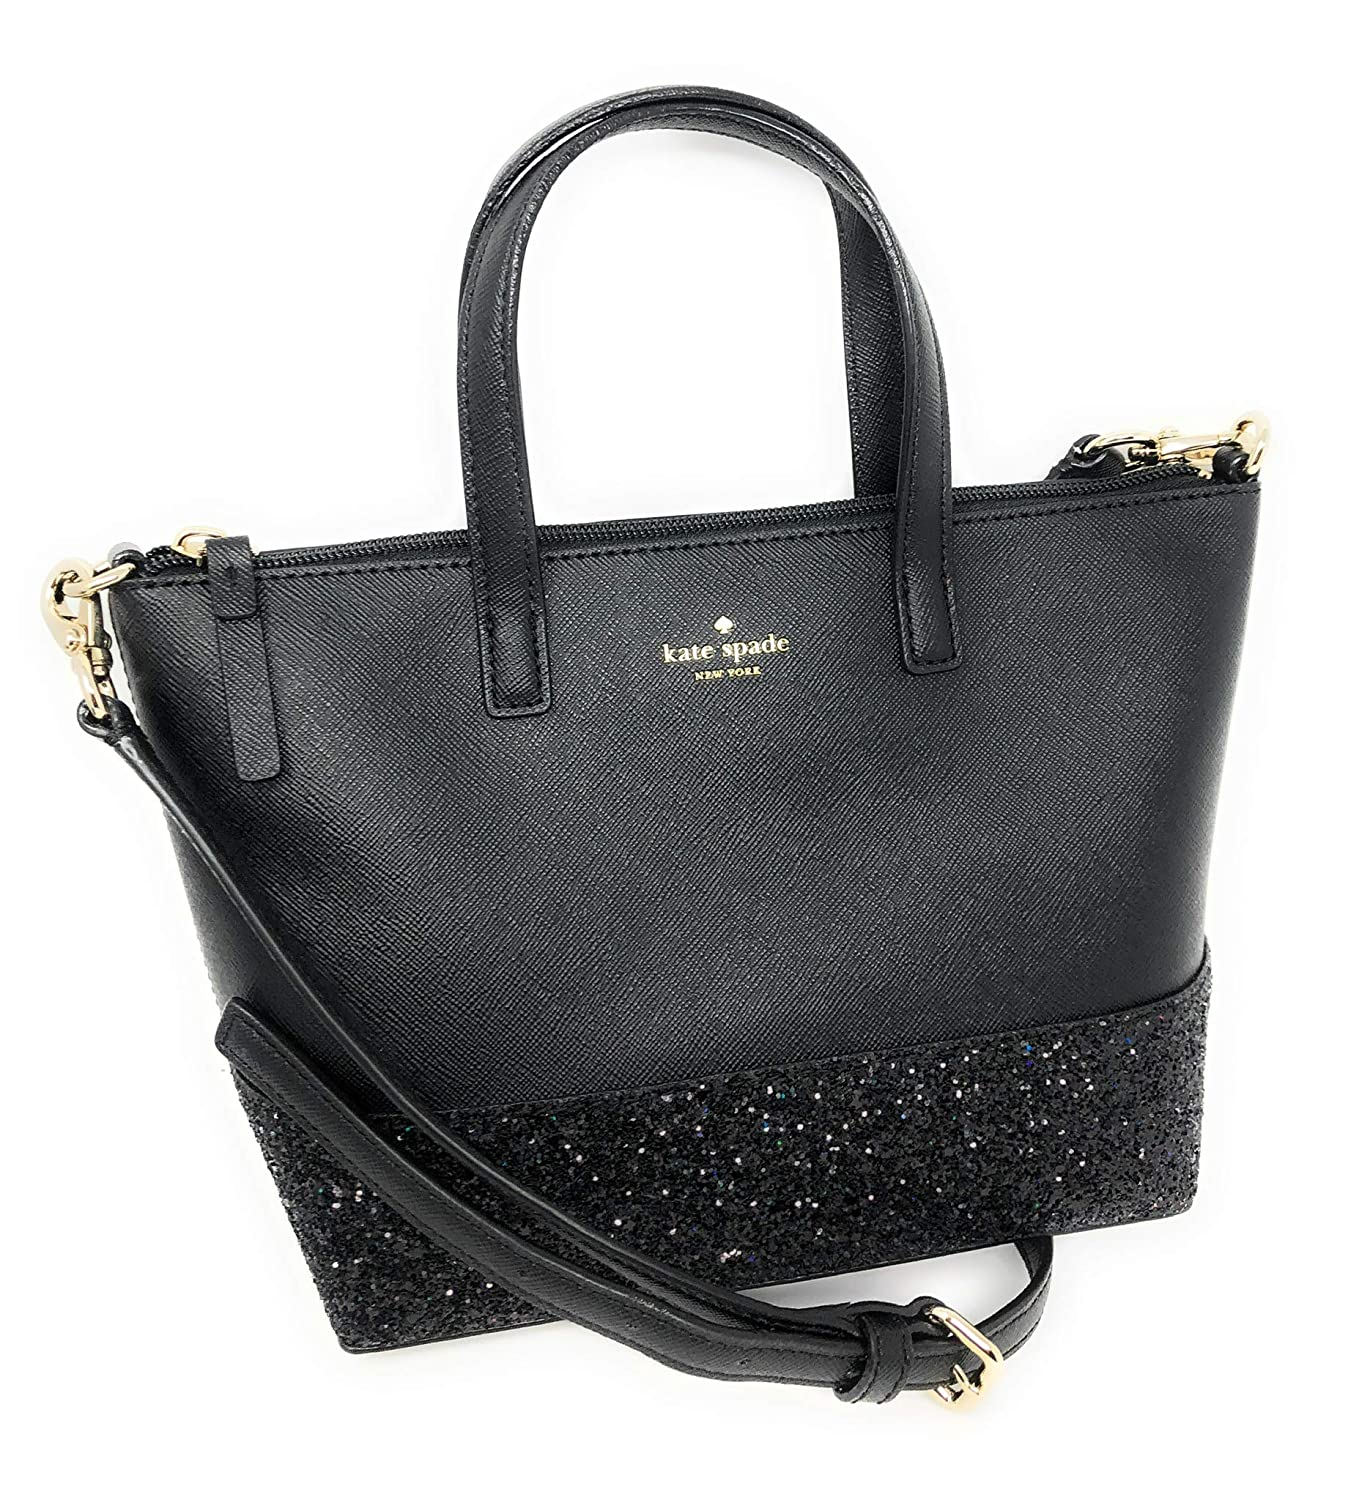 577b65bbd72d Amazon.com: Kate Spade New York Ina Greta Court Glitter Crossbody Bag Top  Handle Handbag (Black): Shoes